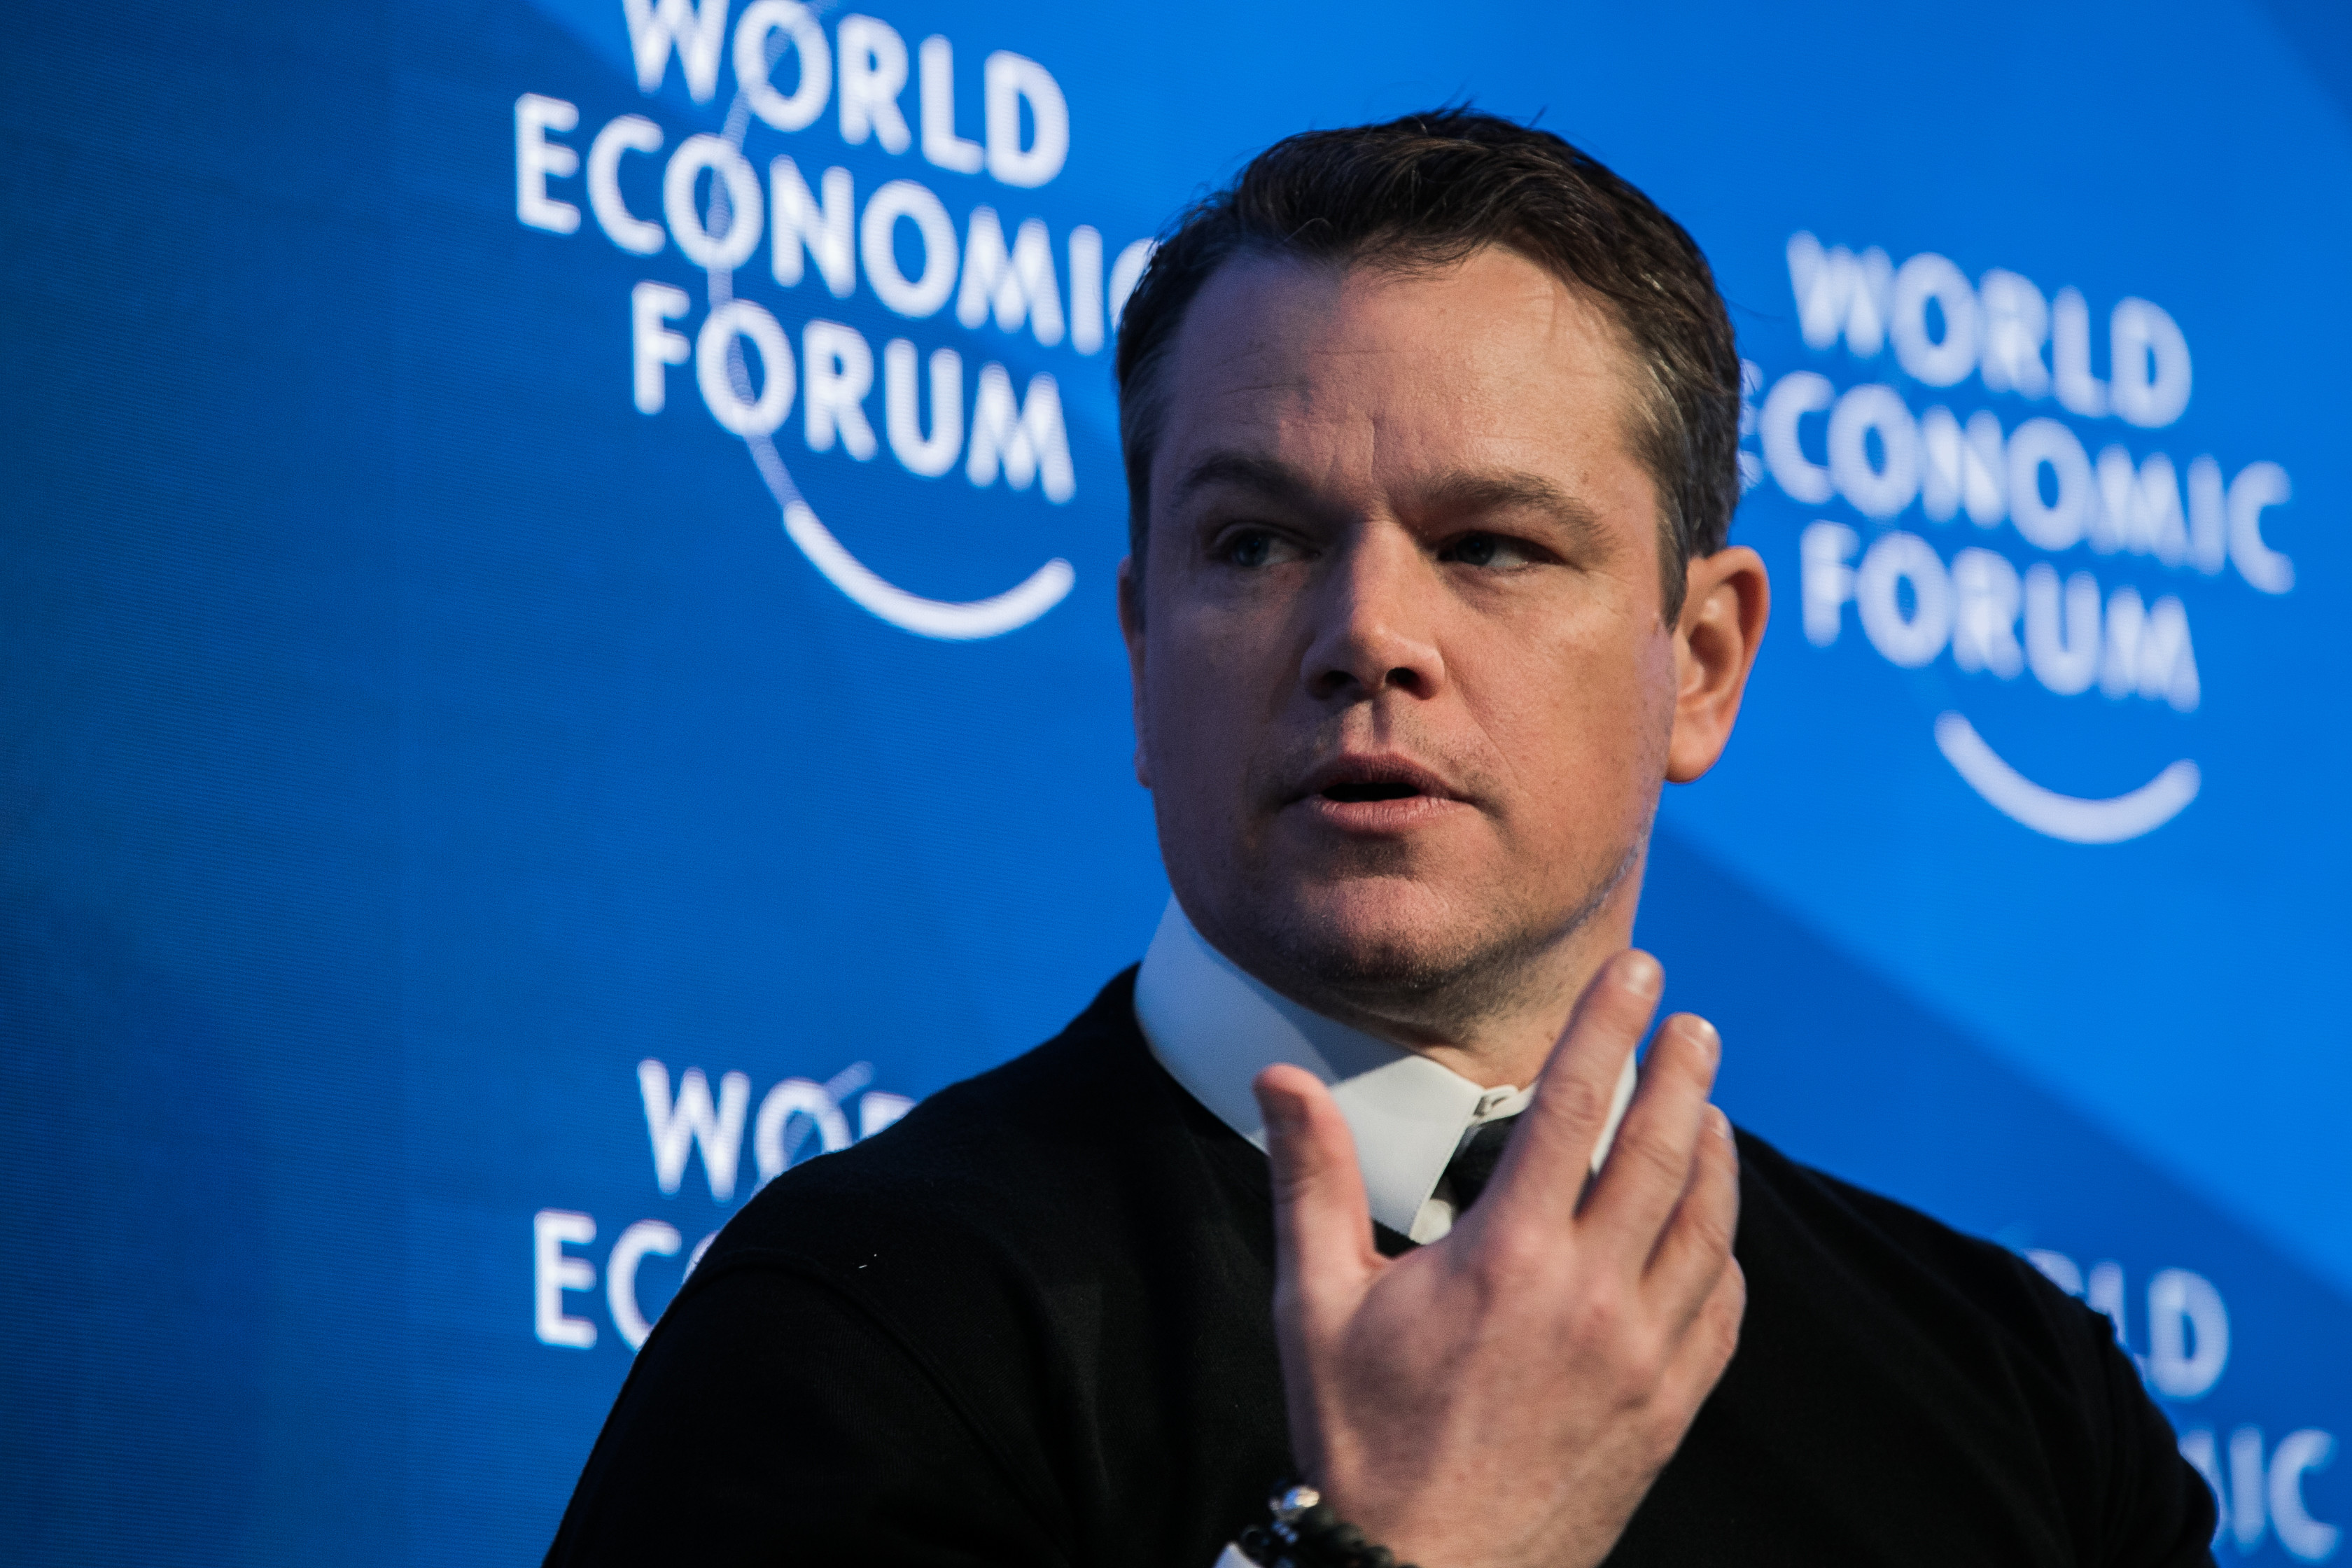 Matt Damon, Co-Founder, Water.org, USA speaking at the Annual Meeting 2017 of the World Economic Forum in Davos, January 17, 2017.Copyright by World Economic Forum / Jakob Polacsek